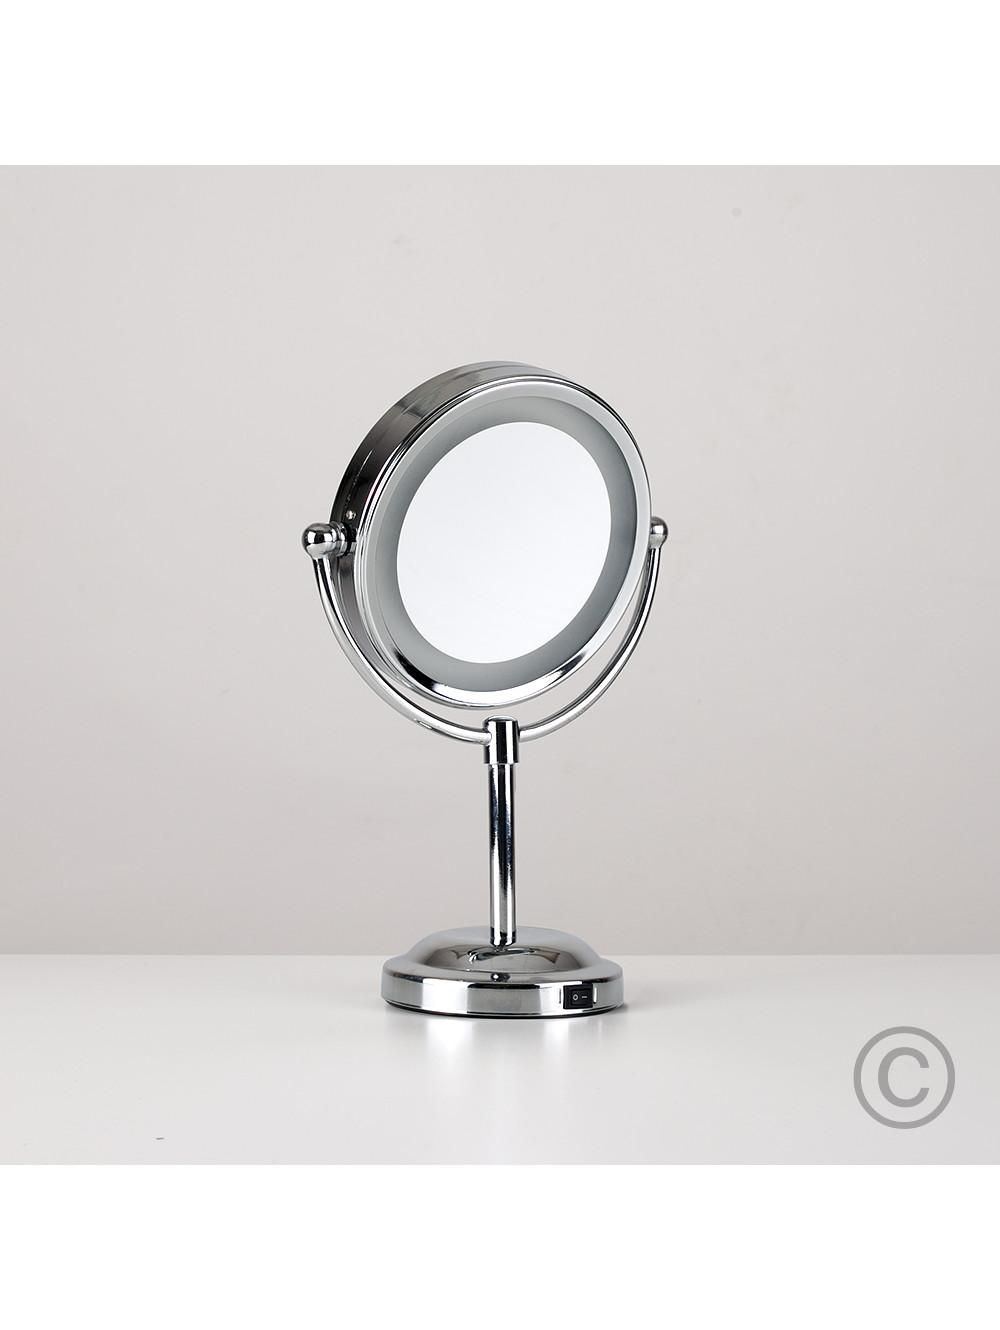 Small Round Light Up Free Standing Mirror | Valuelights Throughout Small Free Standing Mirrors (Image 18 of 20)